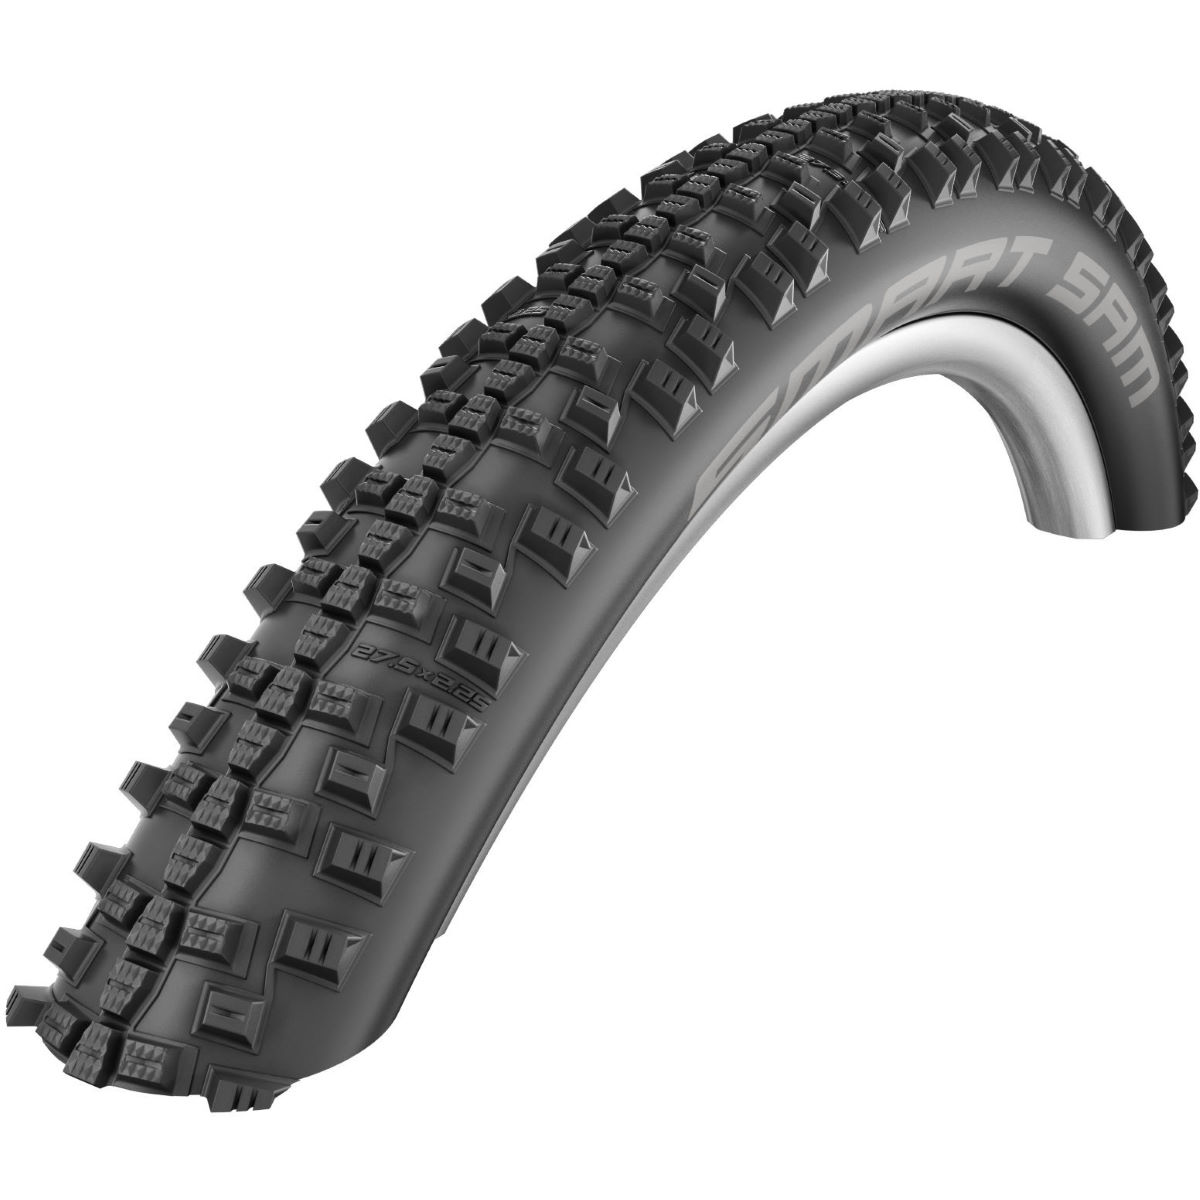 Schwalbe Smart Sam Performance MTB Tyre - 40C 700c Black / Reflex Pneus VTT